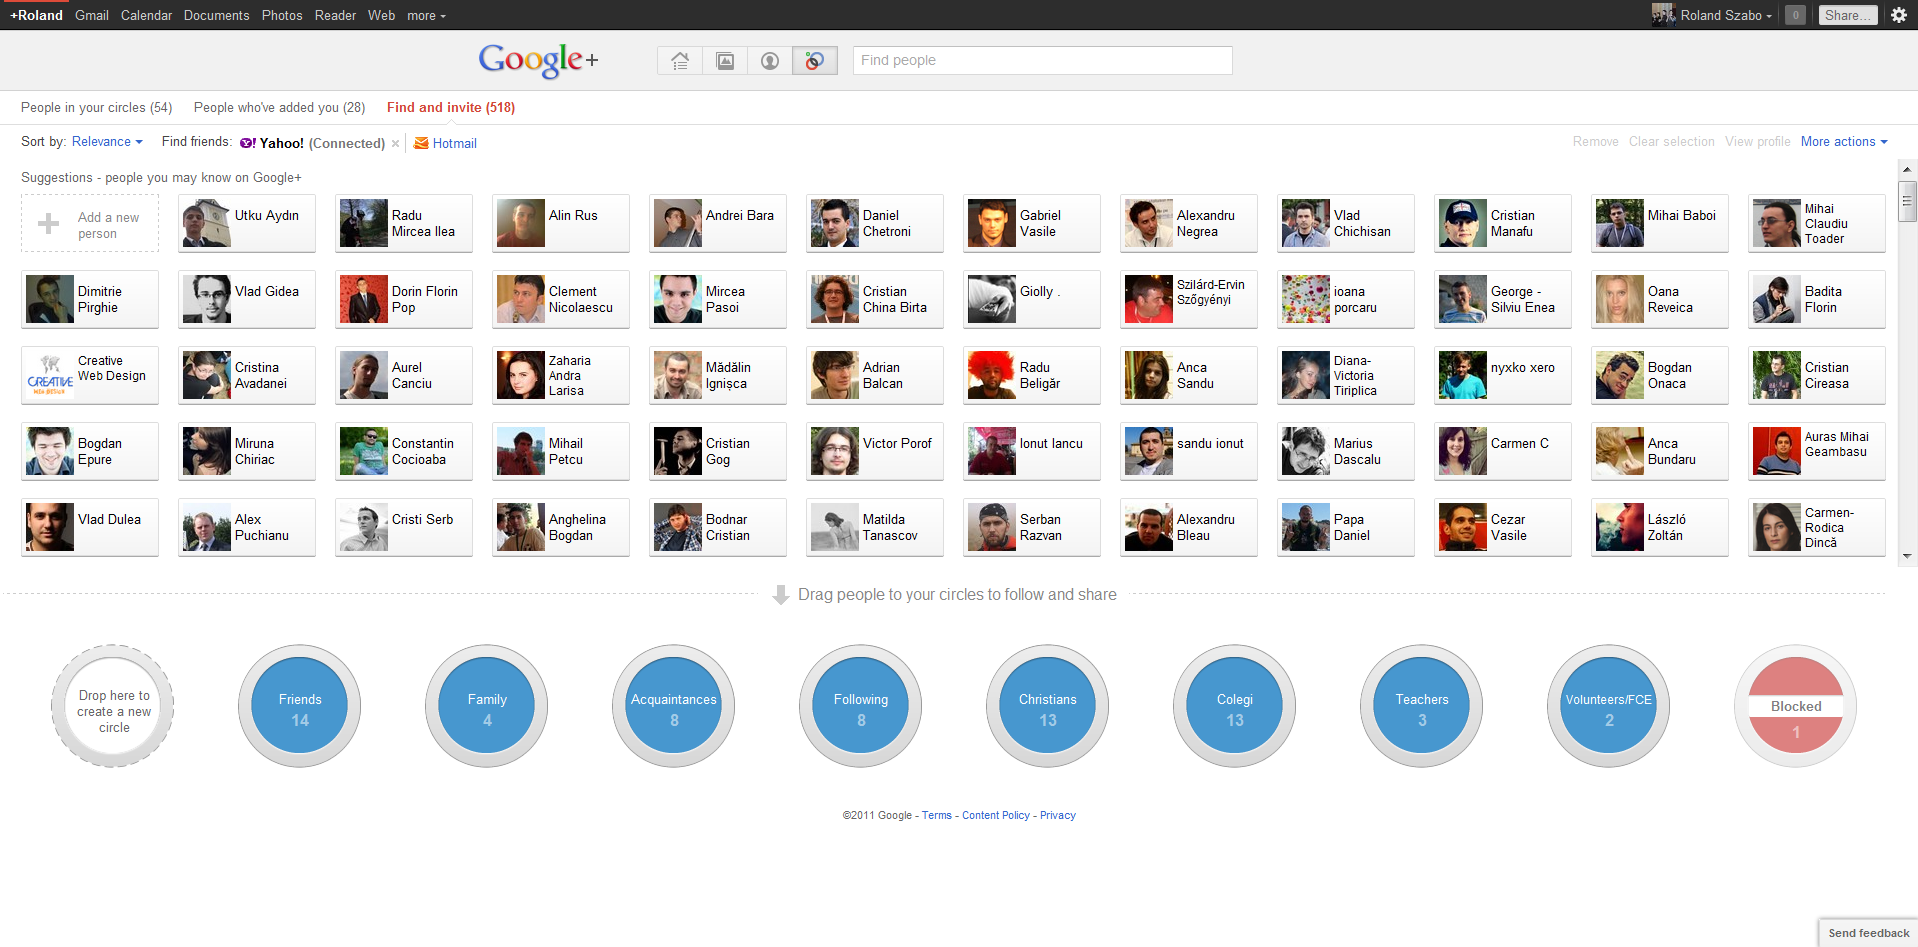 Google+ Recommendation page